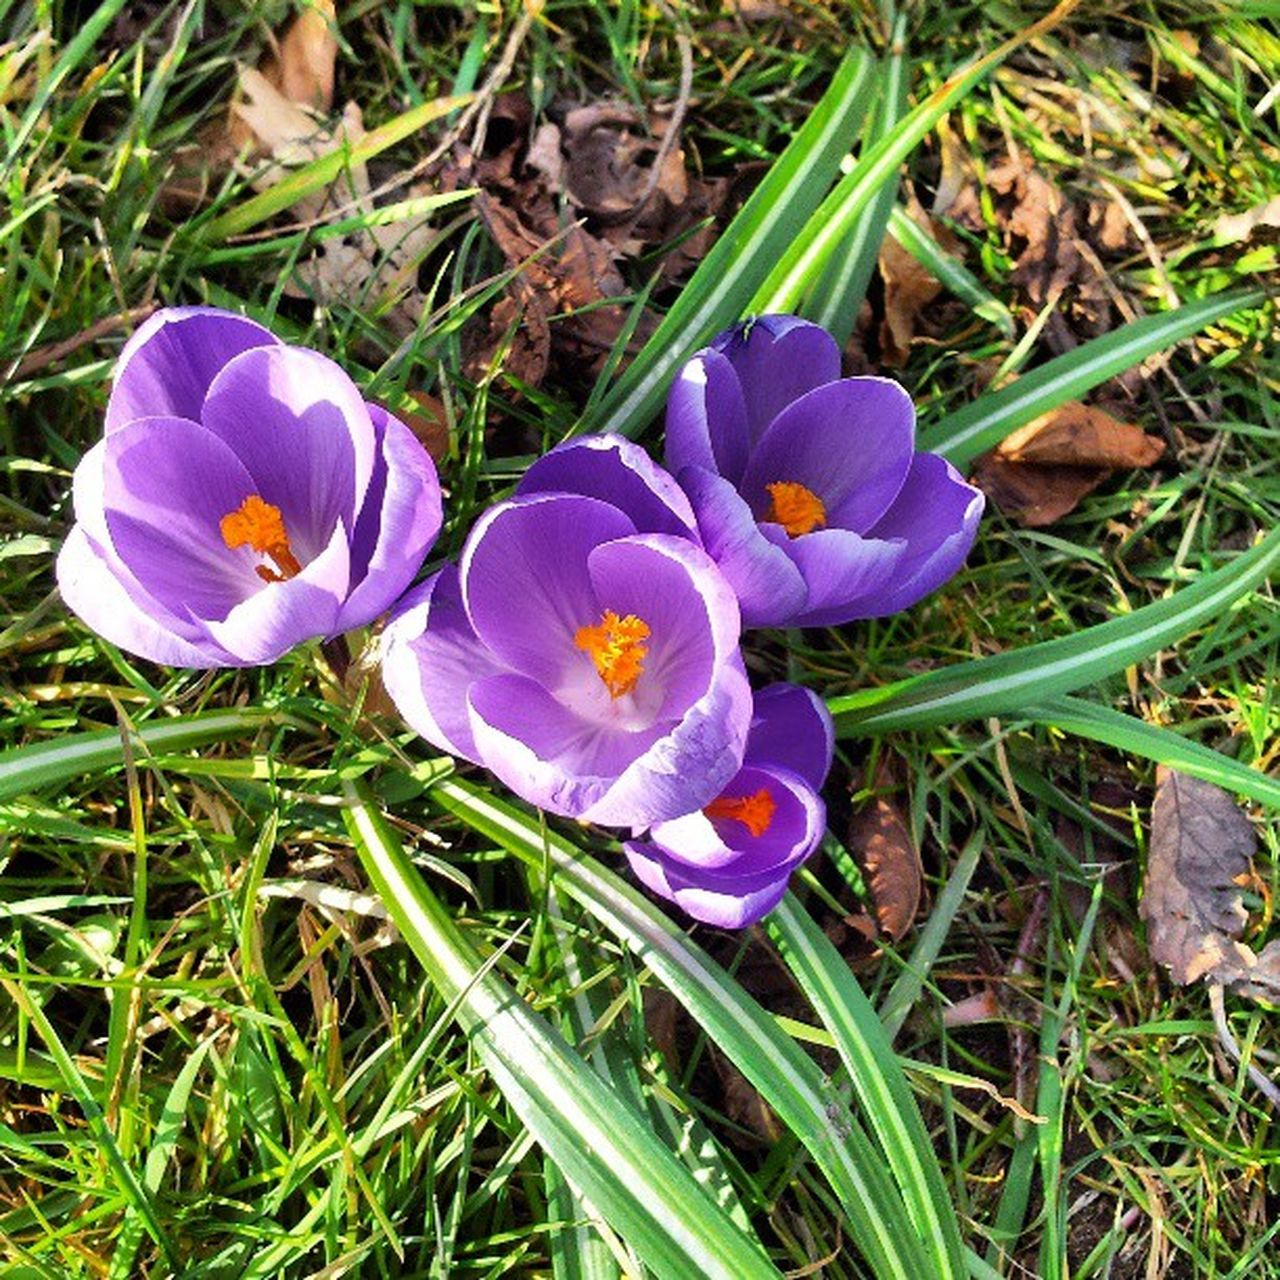 flower, growth, nature, petal, beauty in nature, fragility, field, freshness, flower head, grass, high angle view, outdoors, day, purple, plant, no people, green color, close-up, crocus, blooming